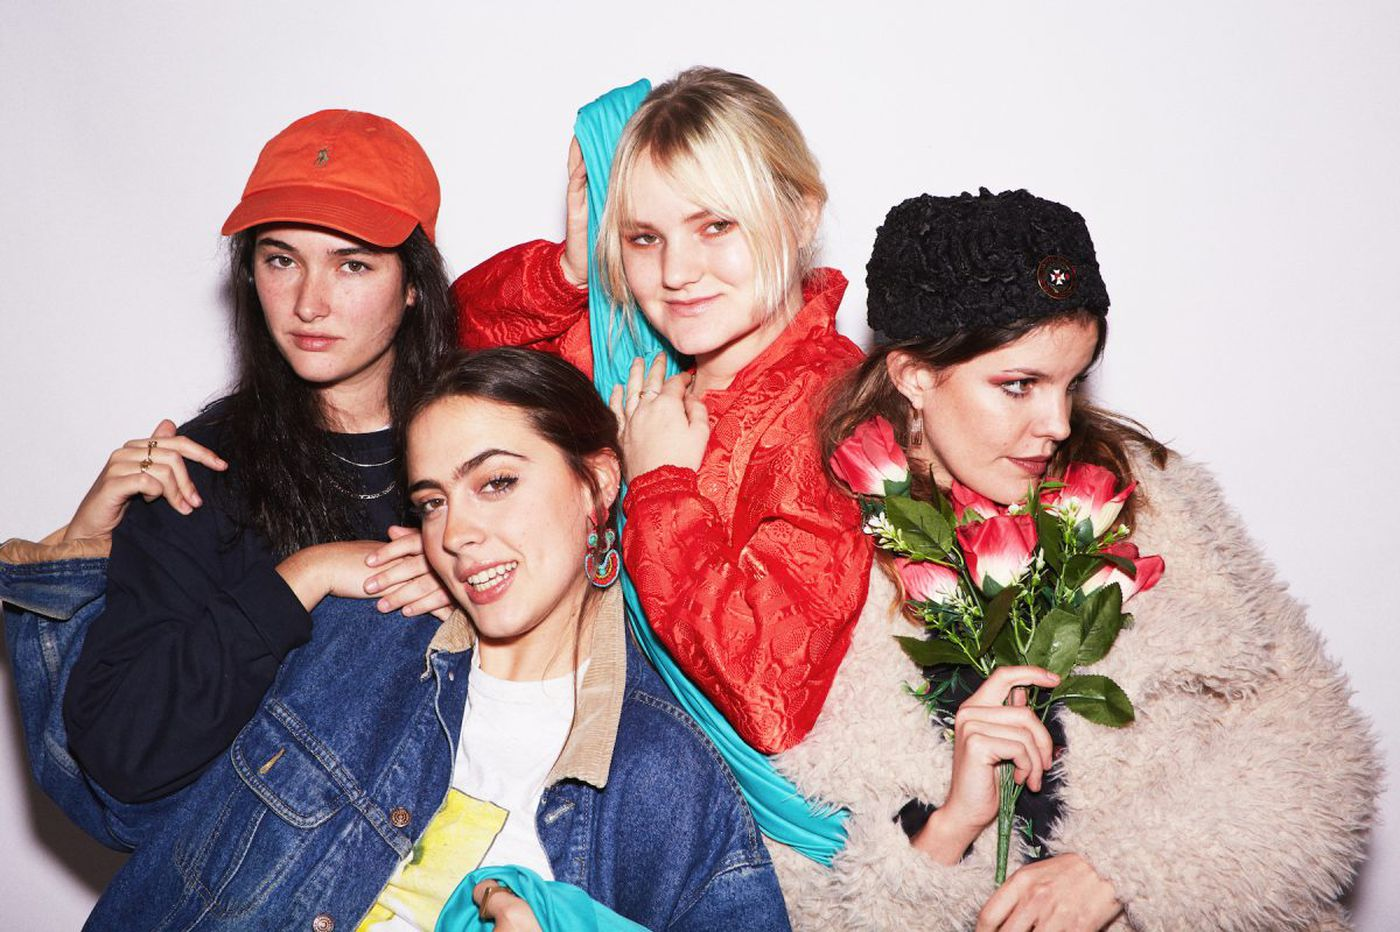 Dan DeLuca's Mix Picks: Hinds, Marion Hill, The Slits movie and The Bul Bey